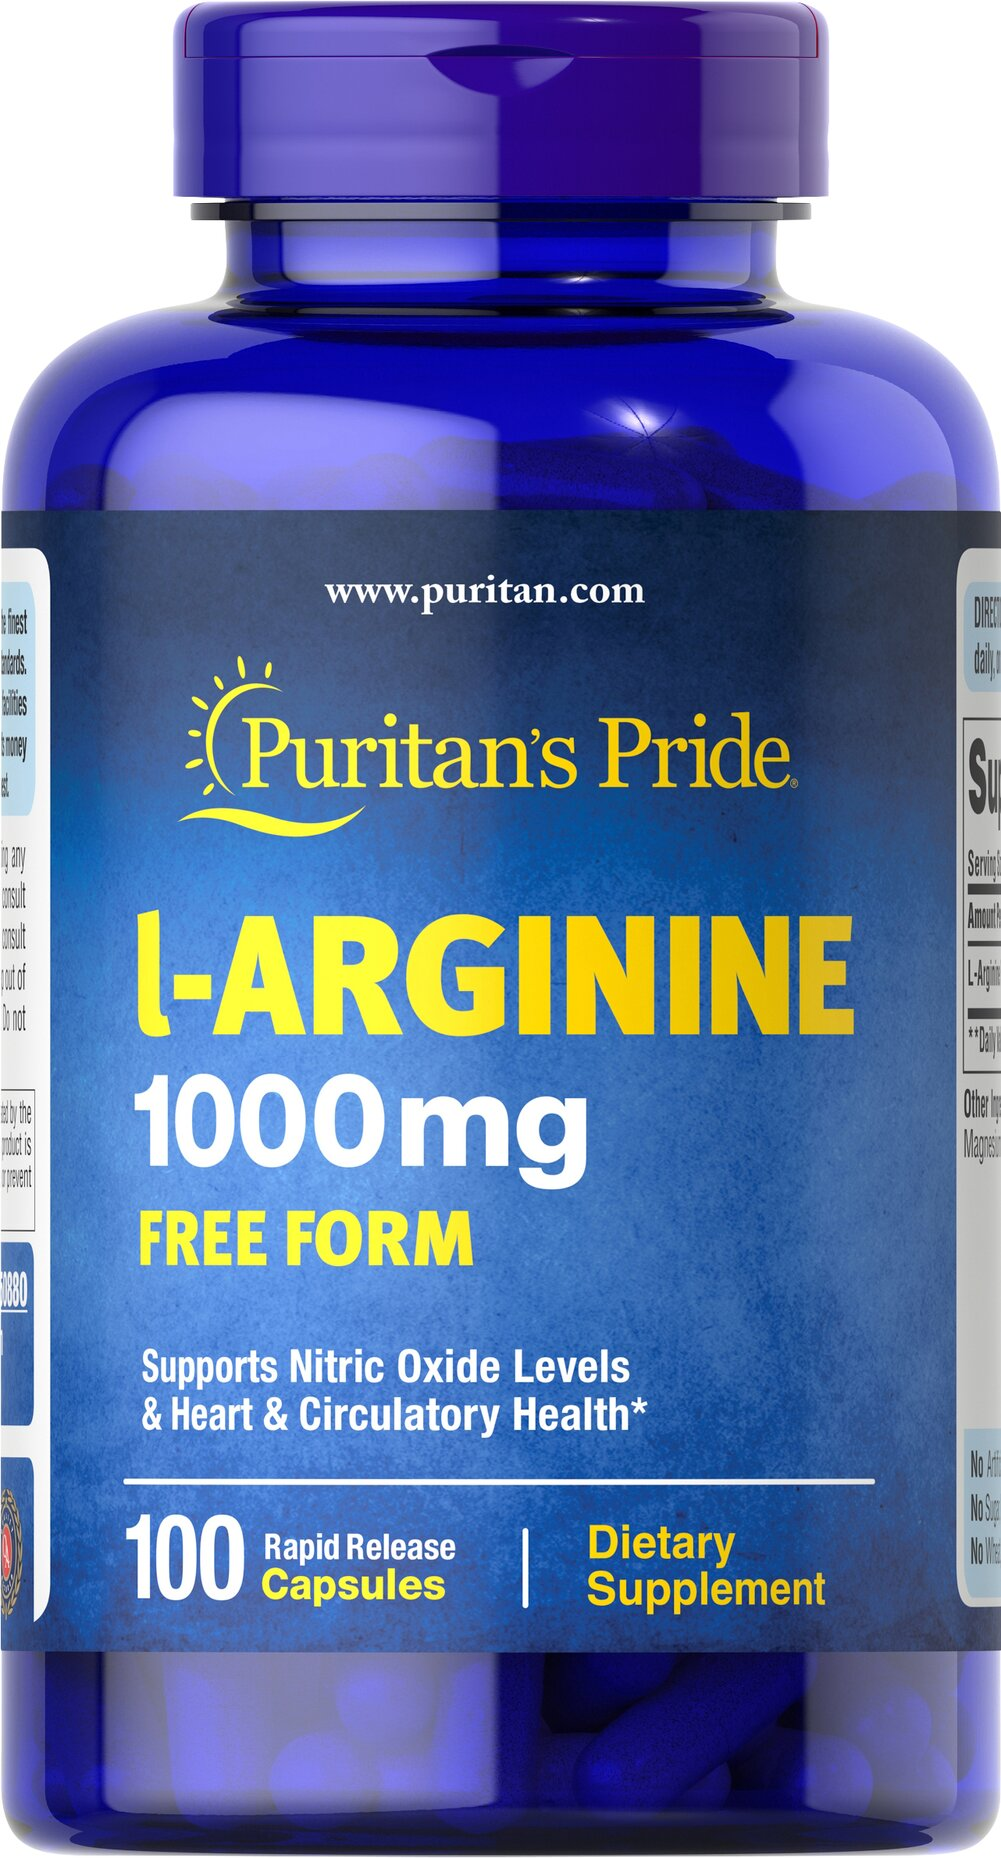 L-Arginine 1000 mg <p>Arginine is one of 20 amino acids, the building blocks of protein.** Arginine can serve as a source of energy, and is involved in various pathways throughout the body.** Arginine supports the effect of exercise and is one of the most important amino acids involved in immune function.** Adults can take one caplet daily. </p> 100 Capsules 1000 mg $23.99